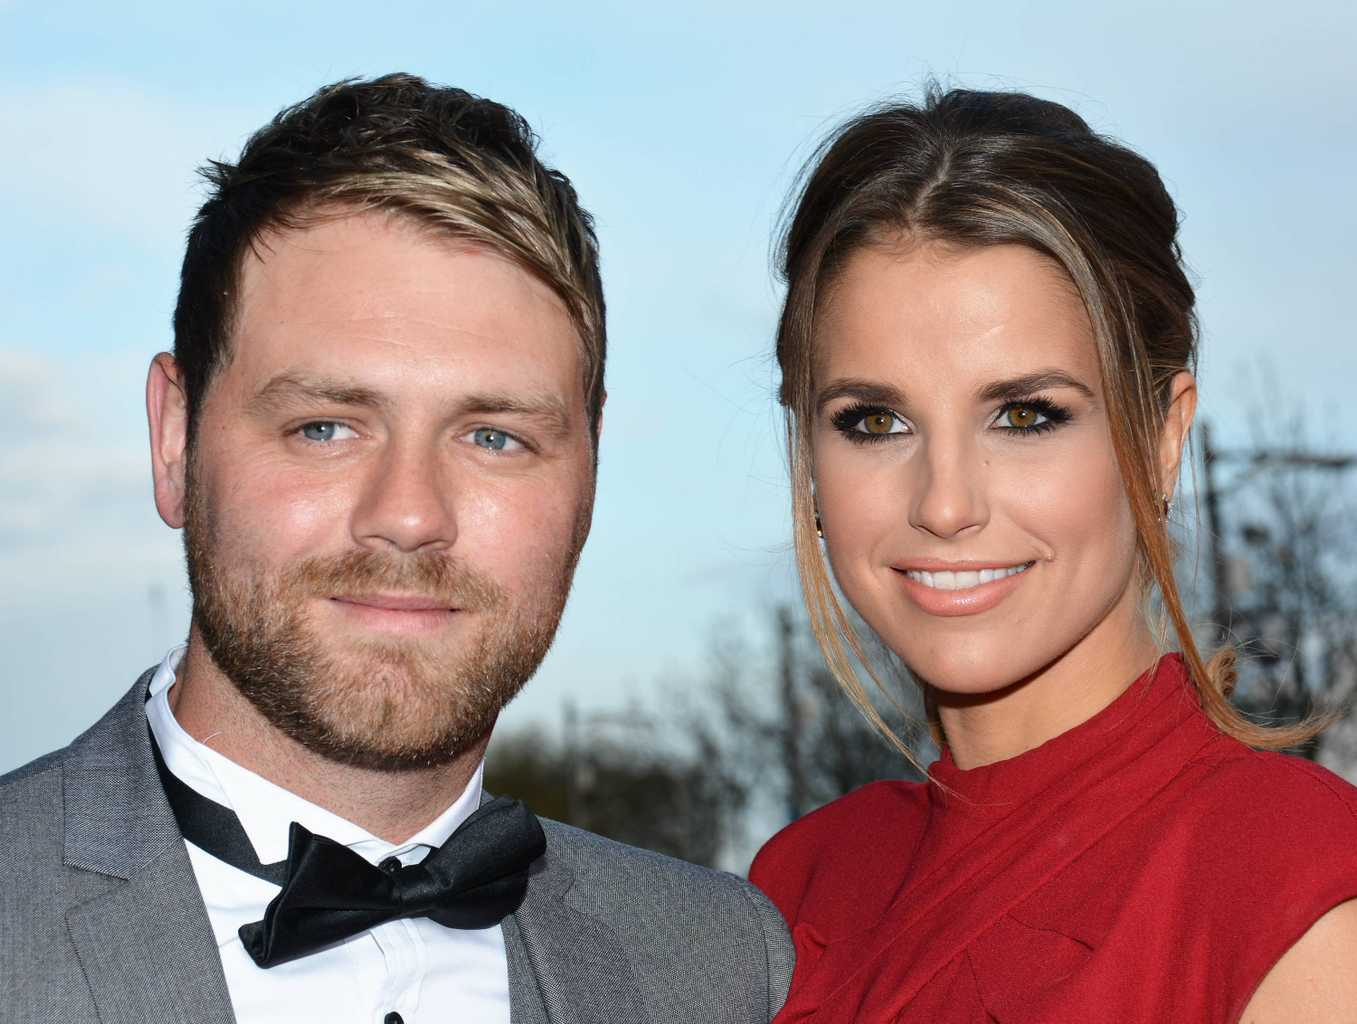 brian mcfadden dating show